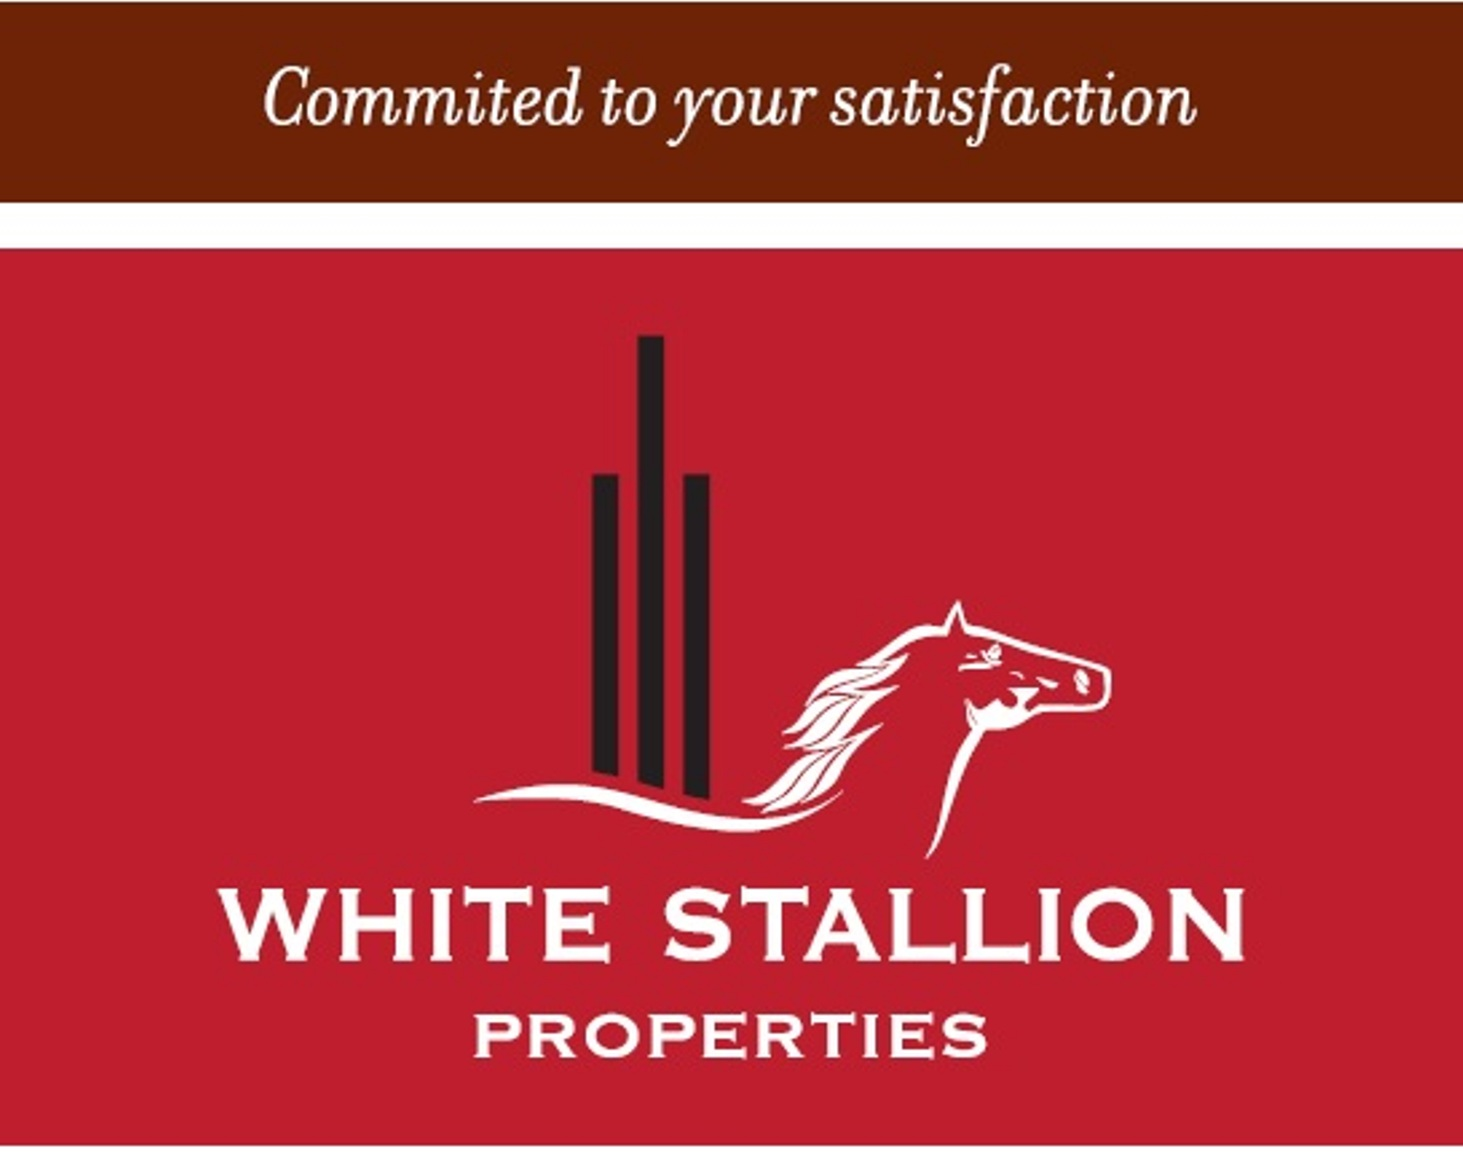 WHITE STALLION PROPERTIES